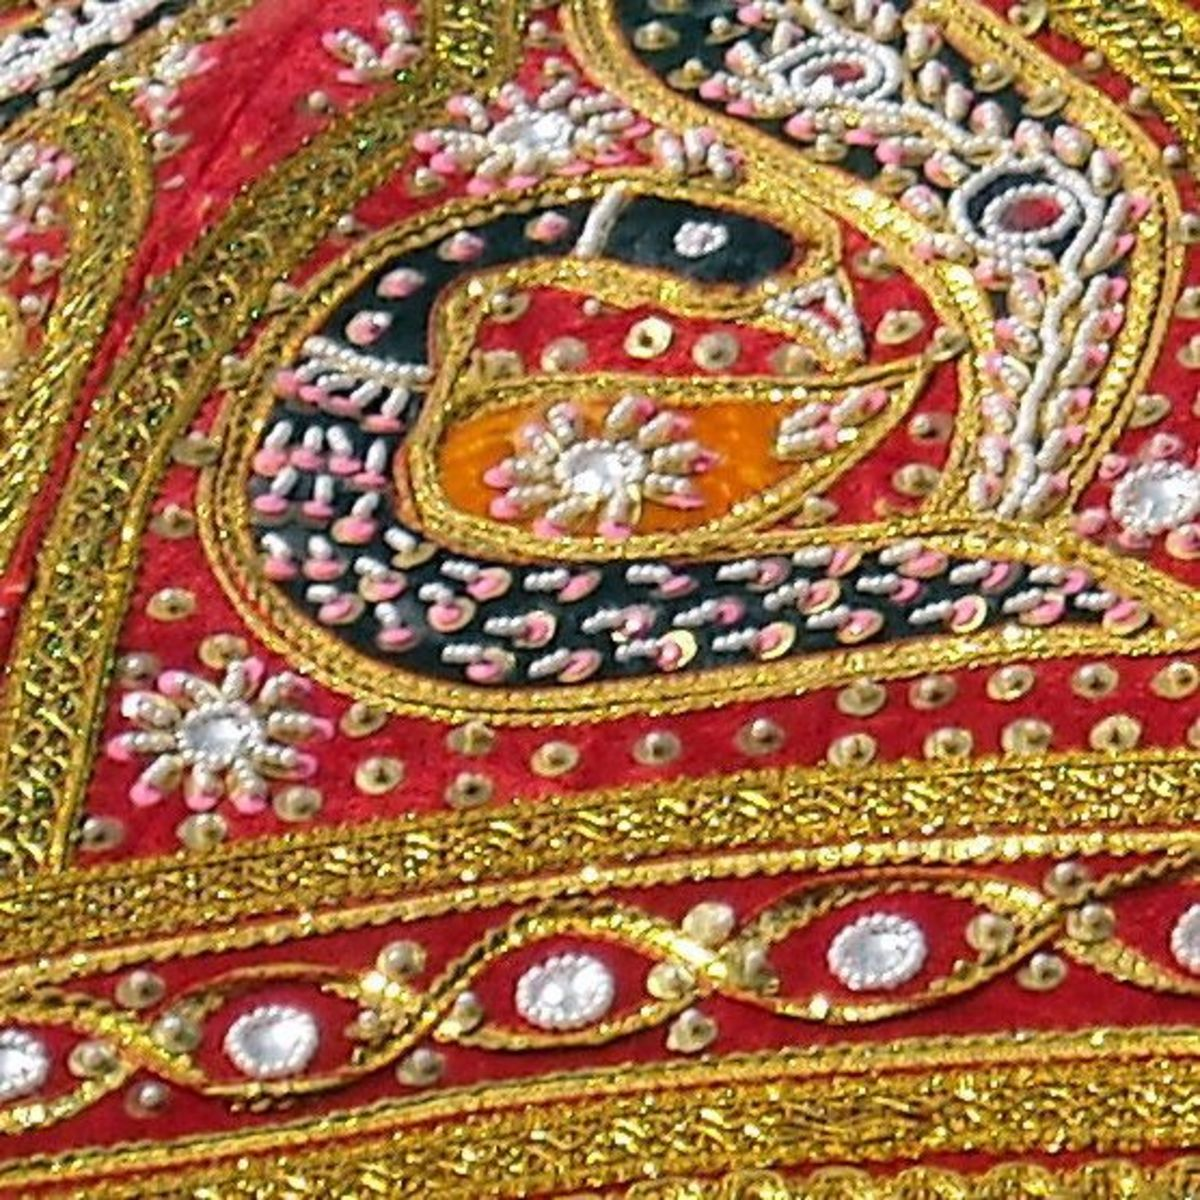 Badla or Flat metallic wire, silver or gilt wire embroidery.